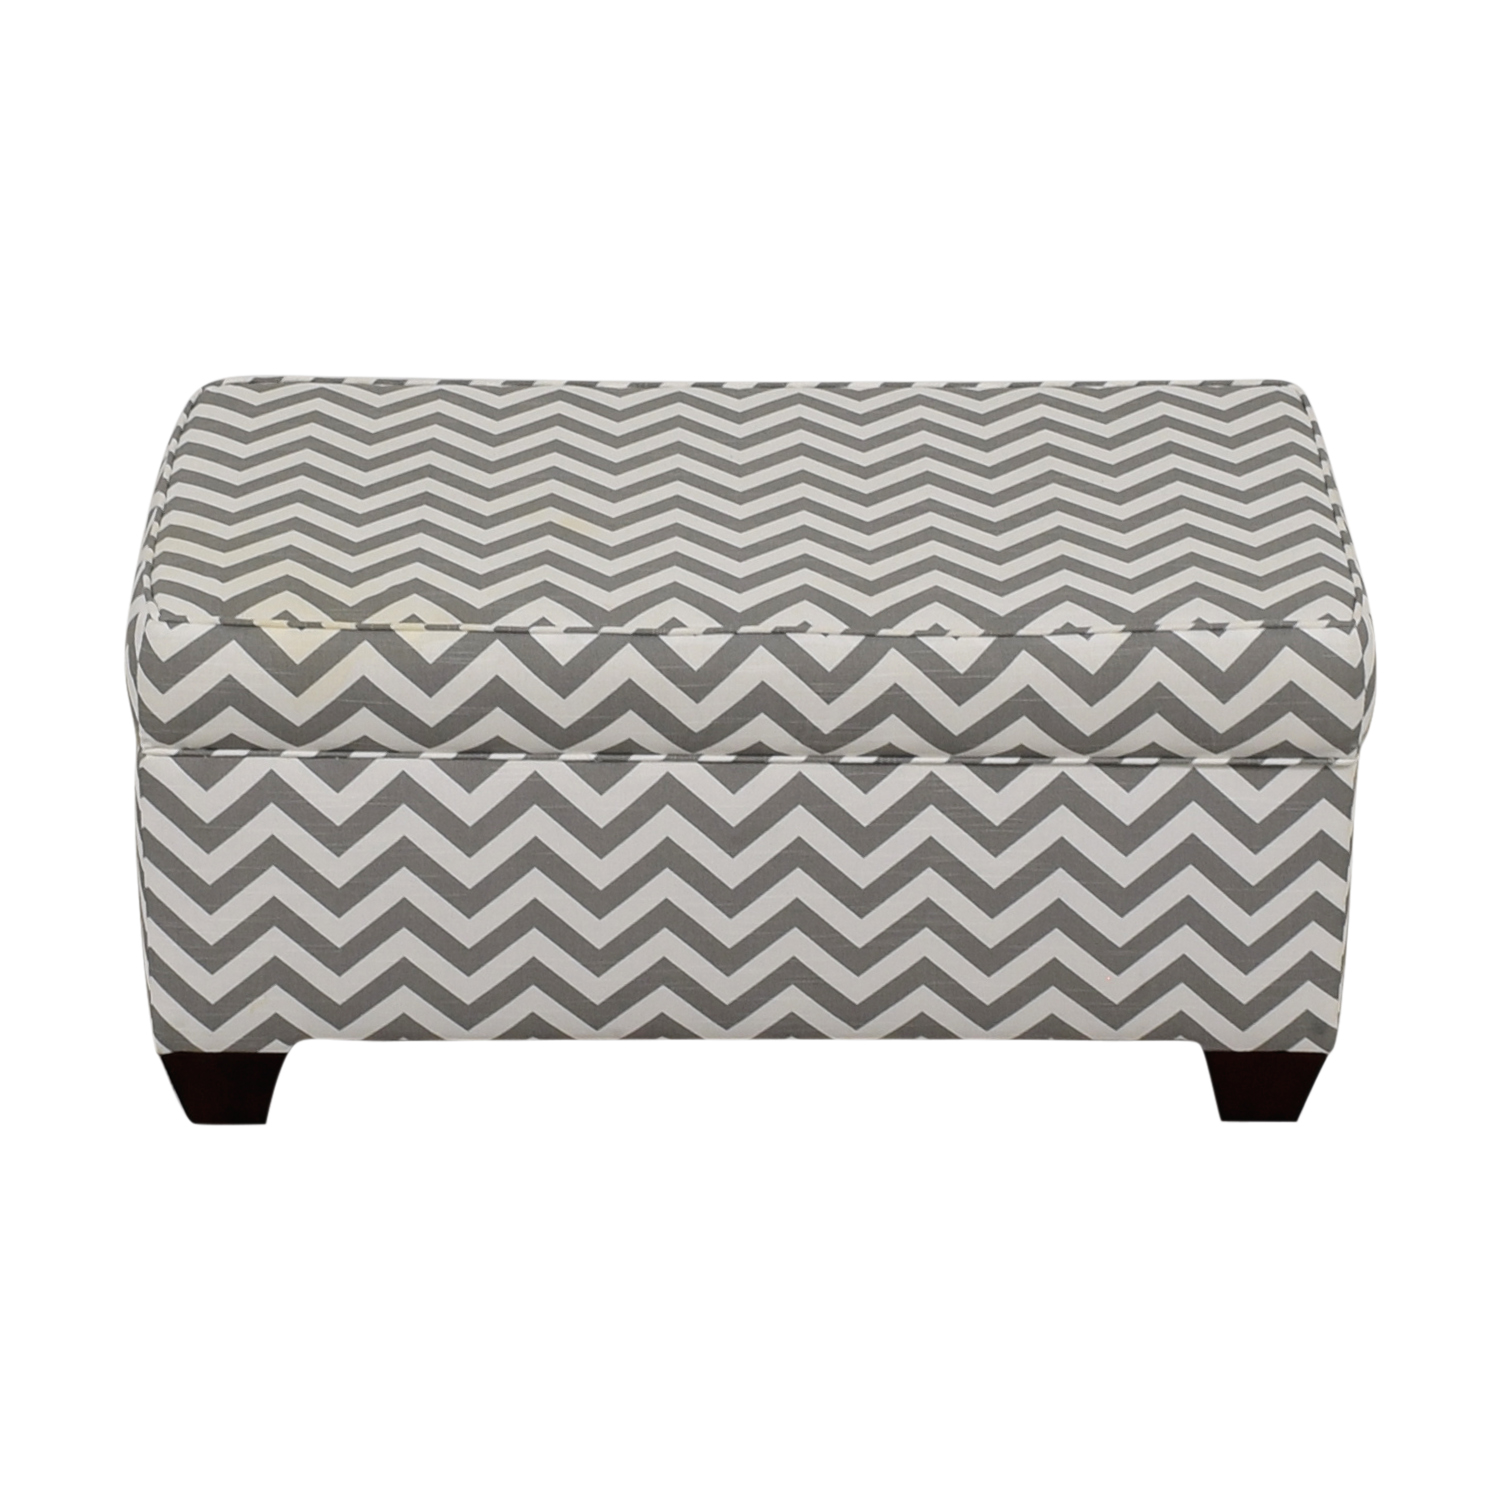 Target Target Grey and White Storage Bench or Ottoman second hand